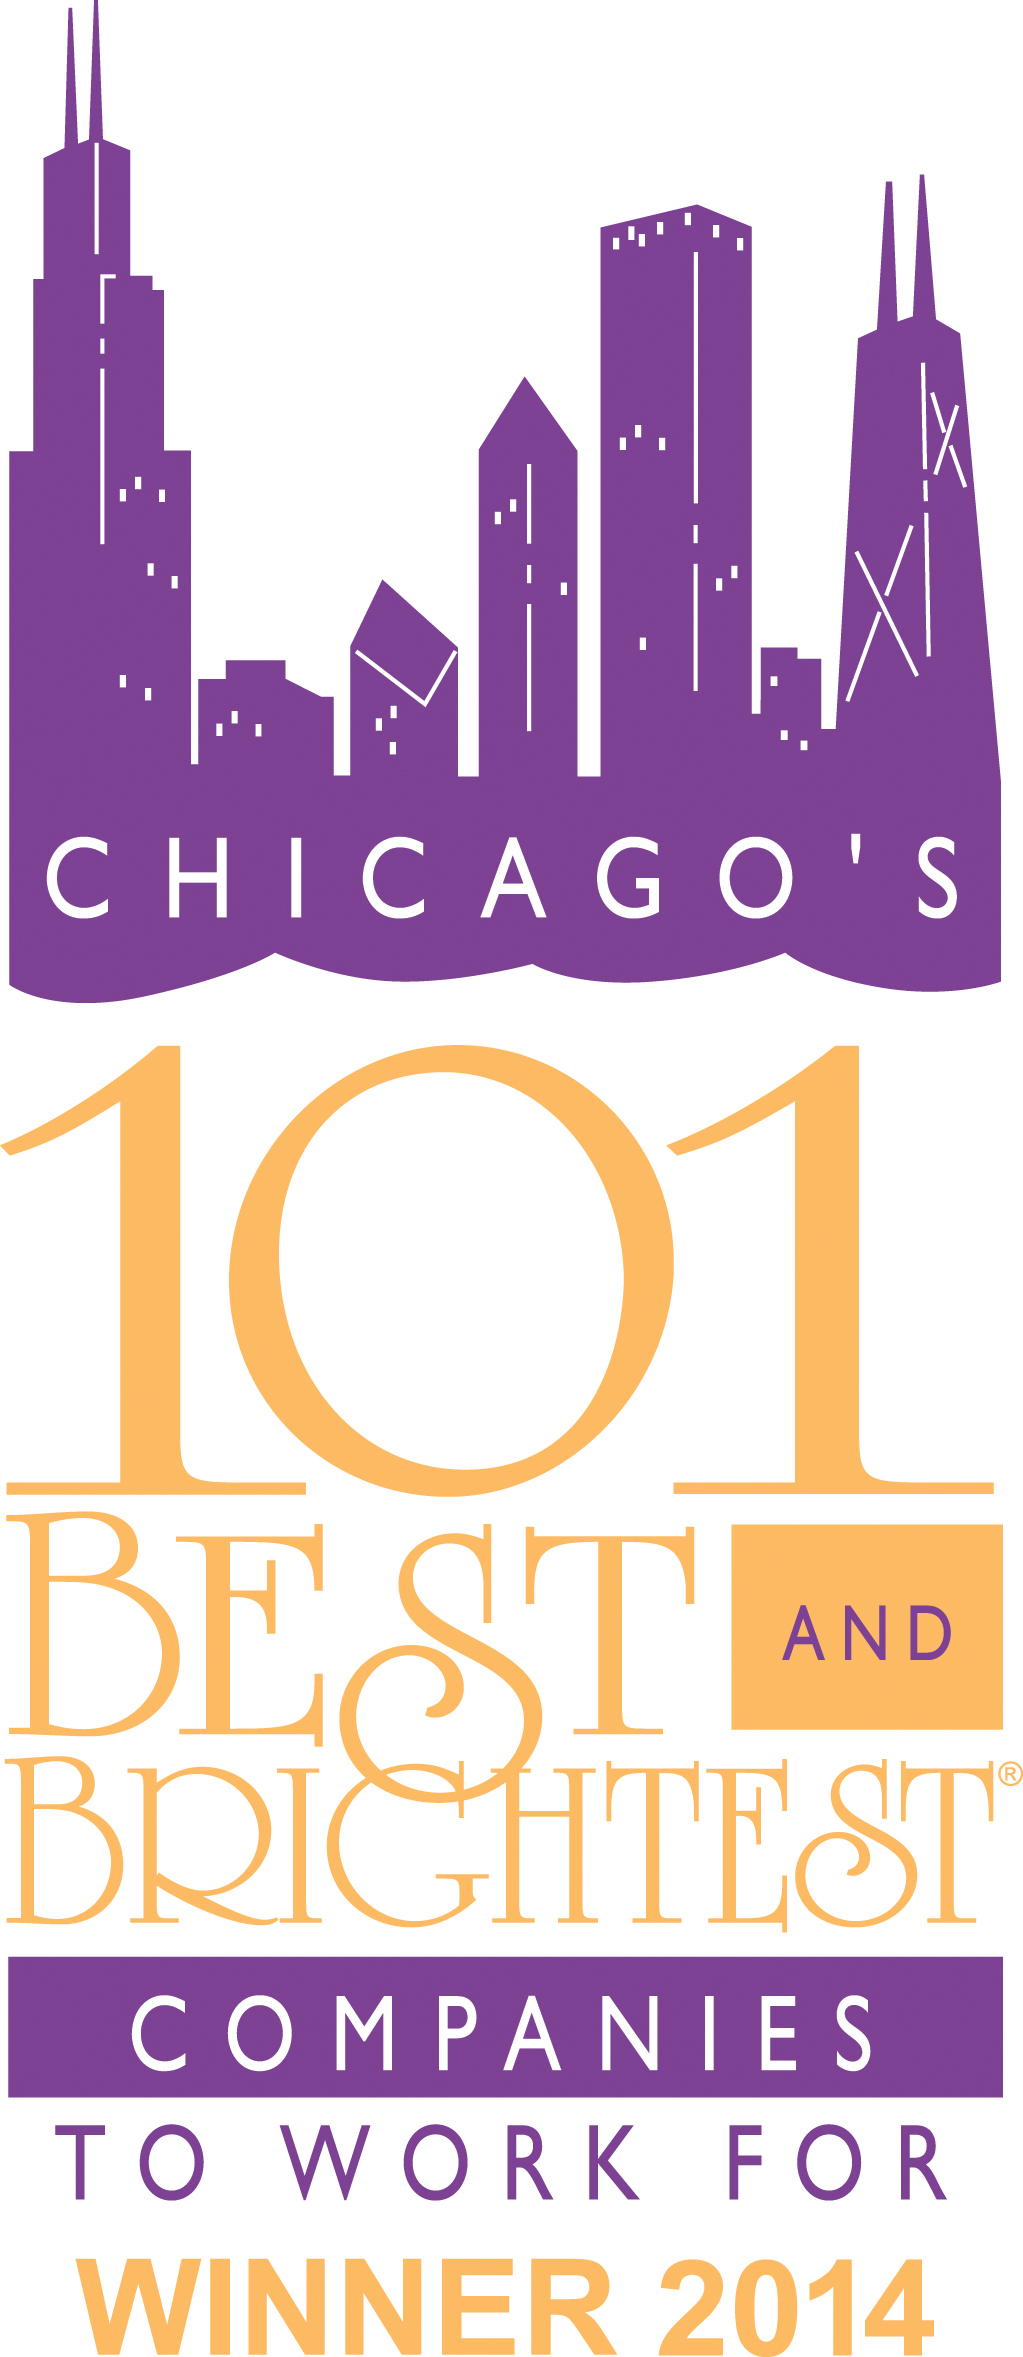 Aerotek named a Best and Brightest Company to Work For in Chicago